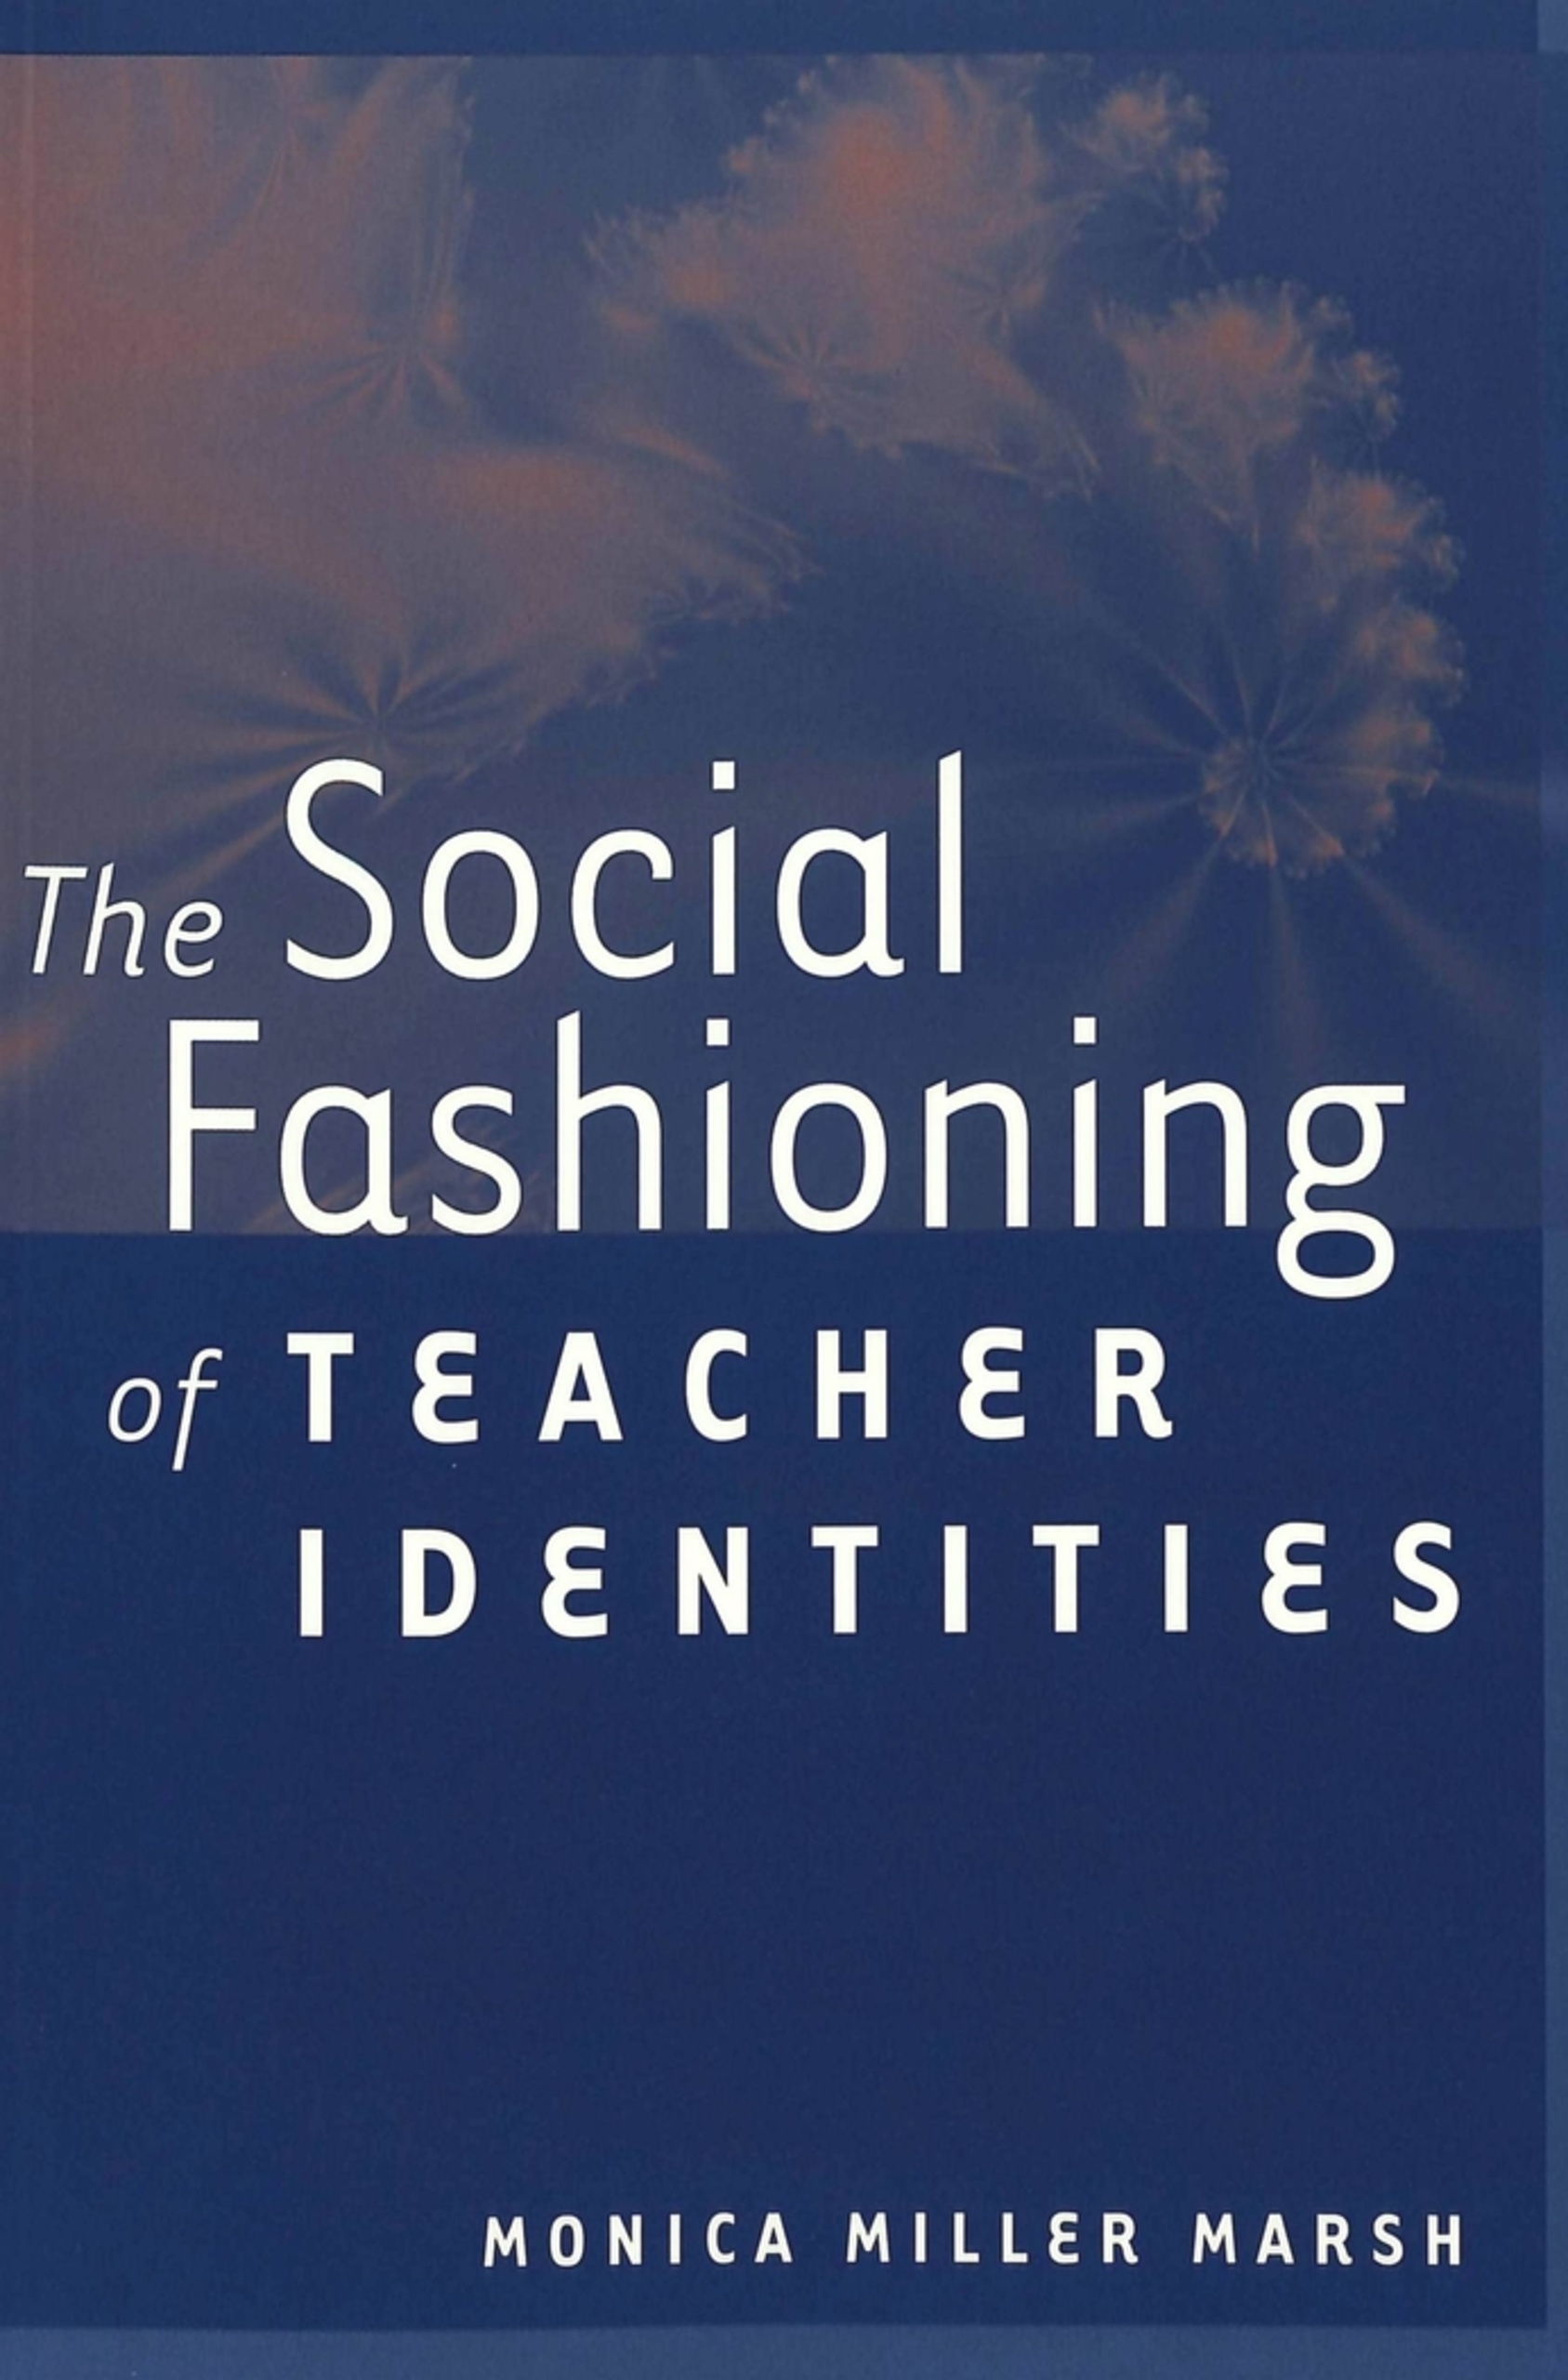 Title: The Social Fashioning of Teacher Identities